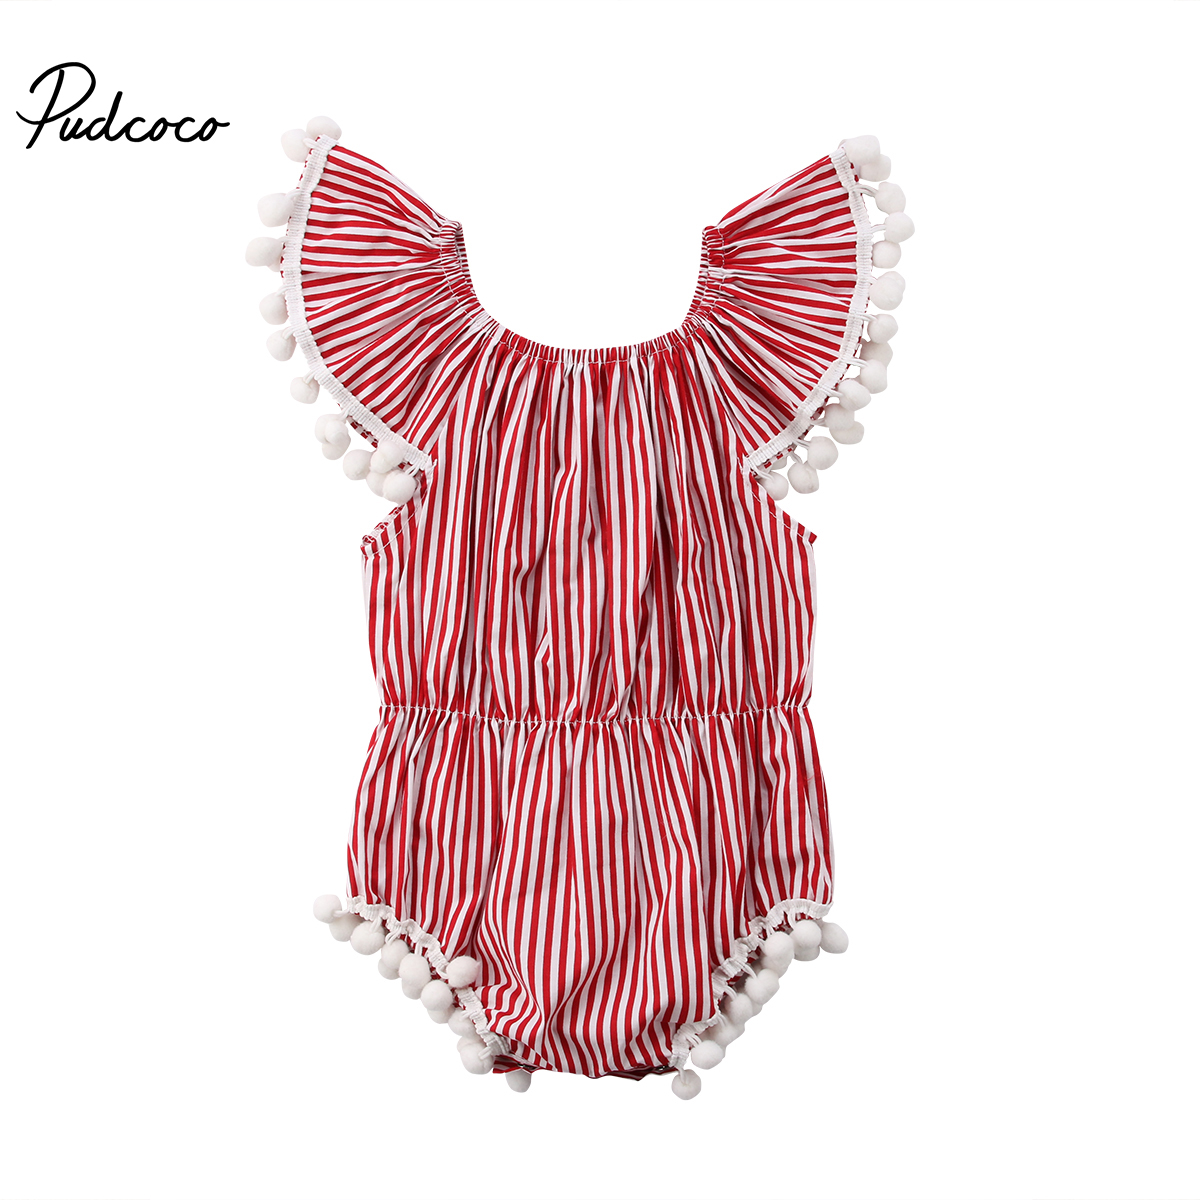 2018 New Kids Baby Girls Rompers Infant Baby Striped Off Shoulder Romper Sleeveless Jumpsuit Outfits Clothes 2017 summer toddler kids girls striped baby romper off shoulder flare sleeve cotton clothes jumpsuit outfits sunsuit 0 4t